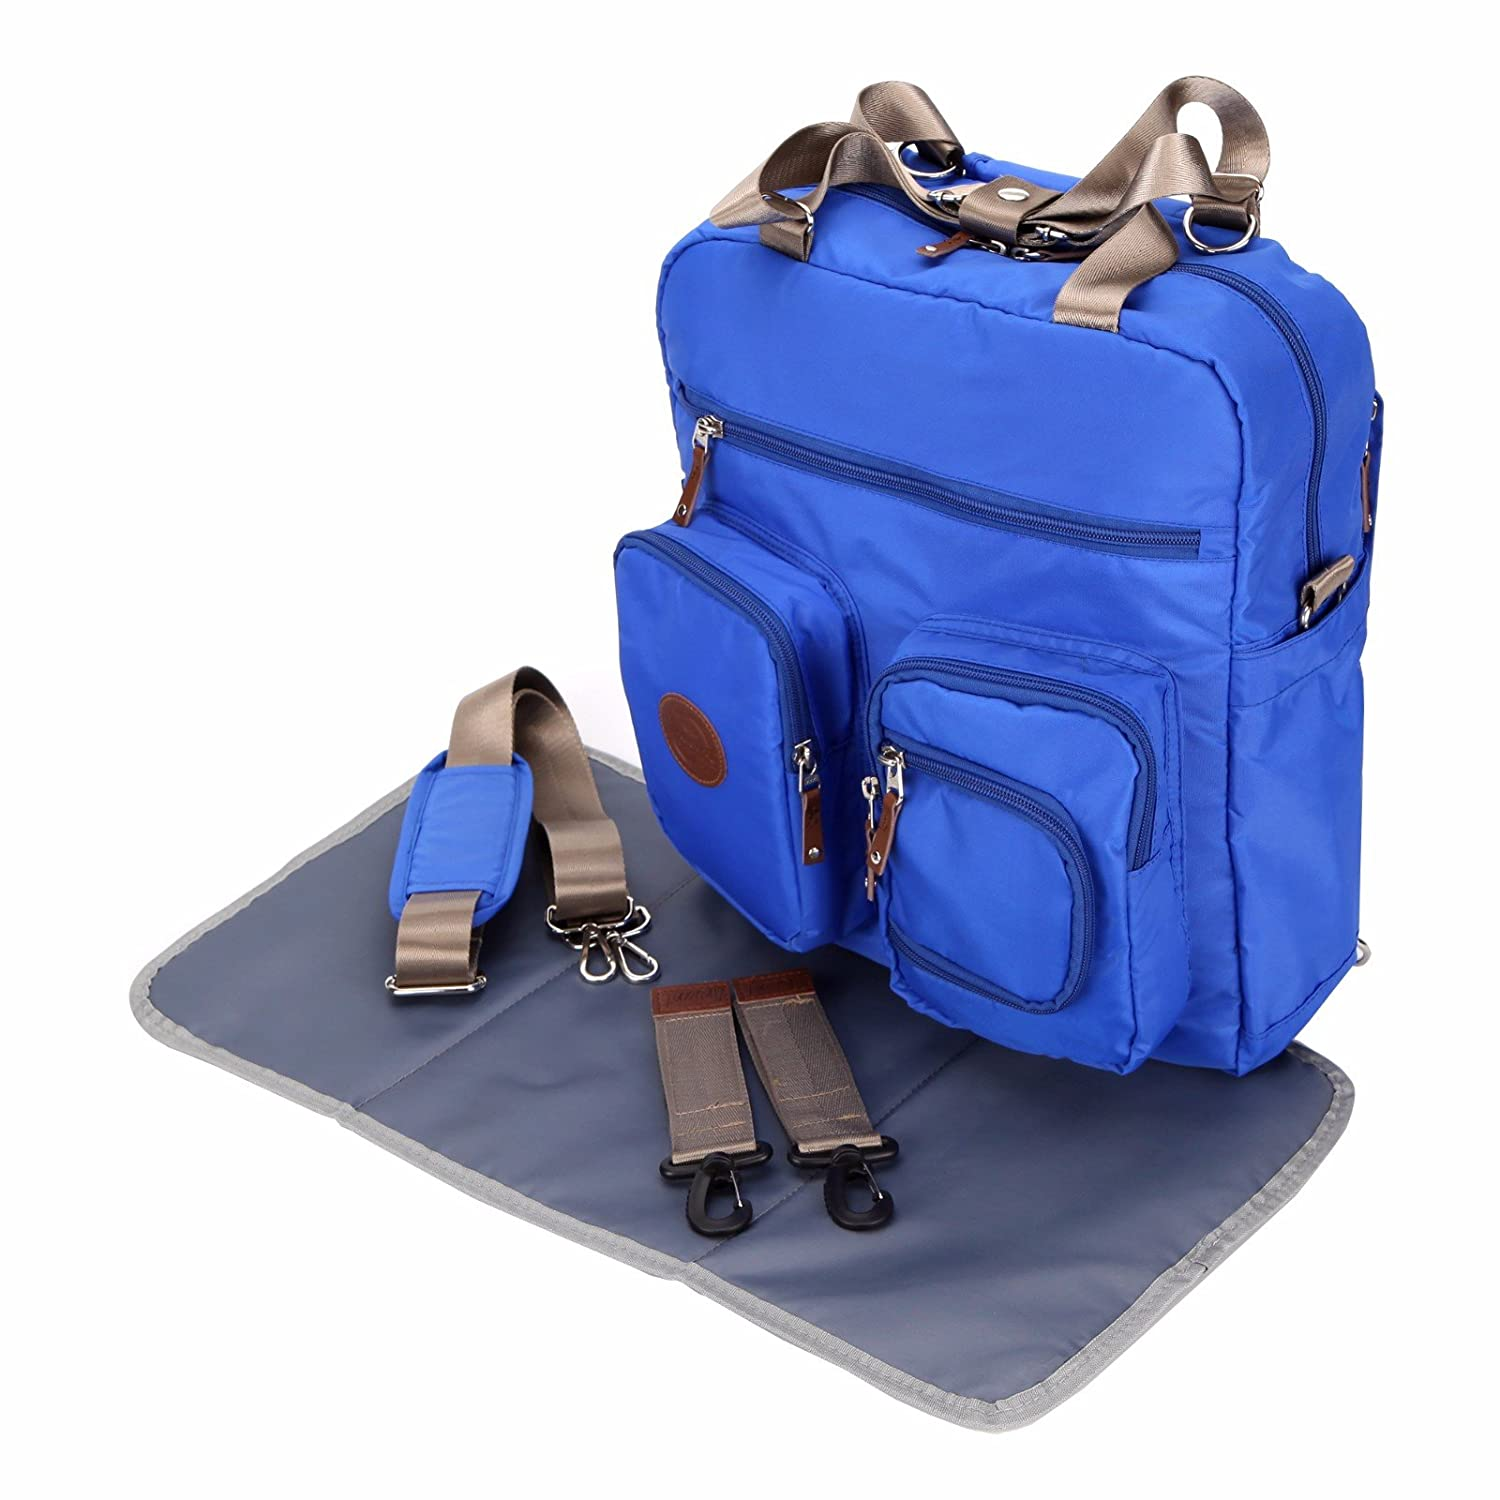 f6b1b10e50886 Amazon.com : Baby Diaper Bags Backpack Designer for Dads Mom Twins  Multi-function Large Tote (Blue) : Baby